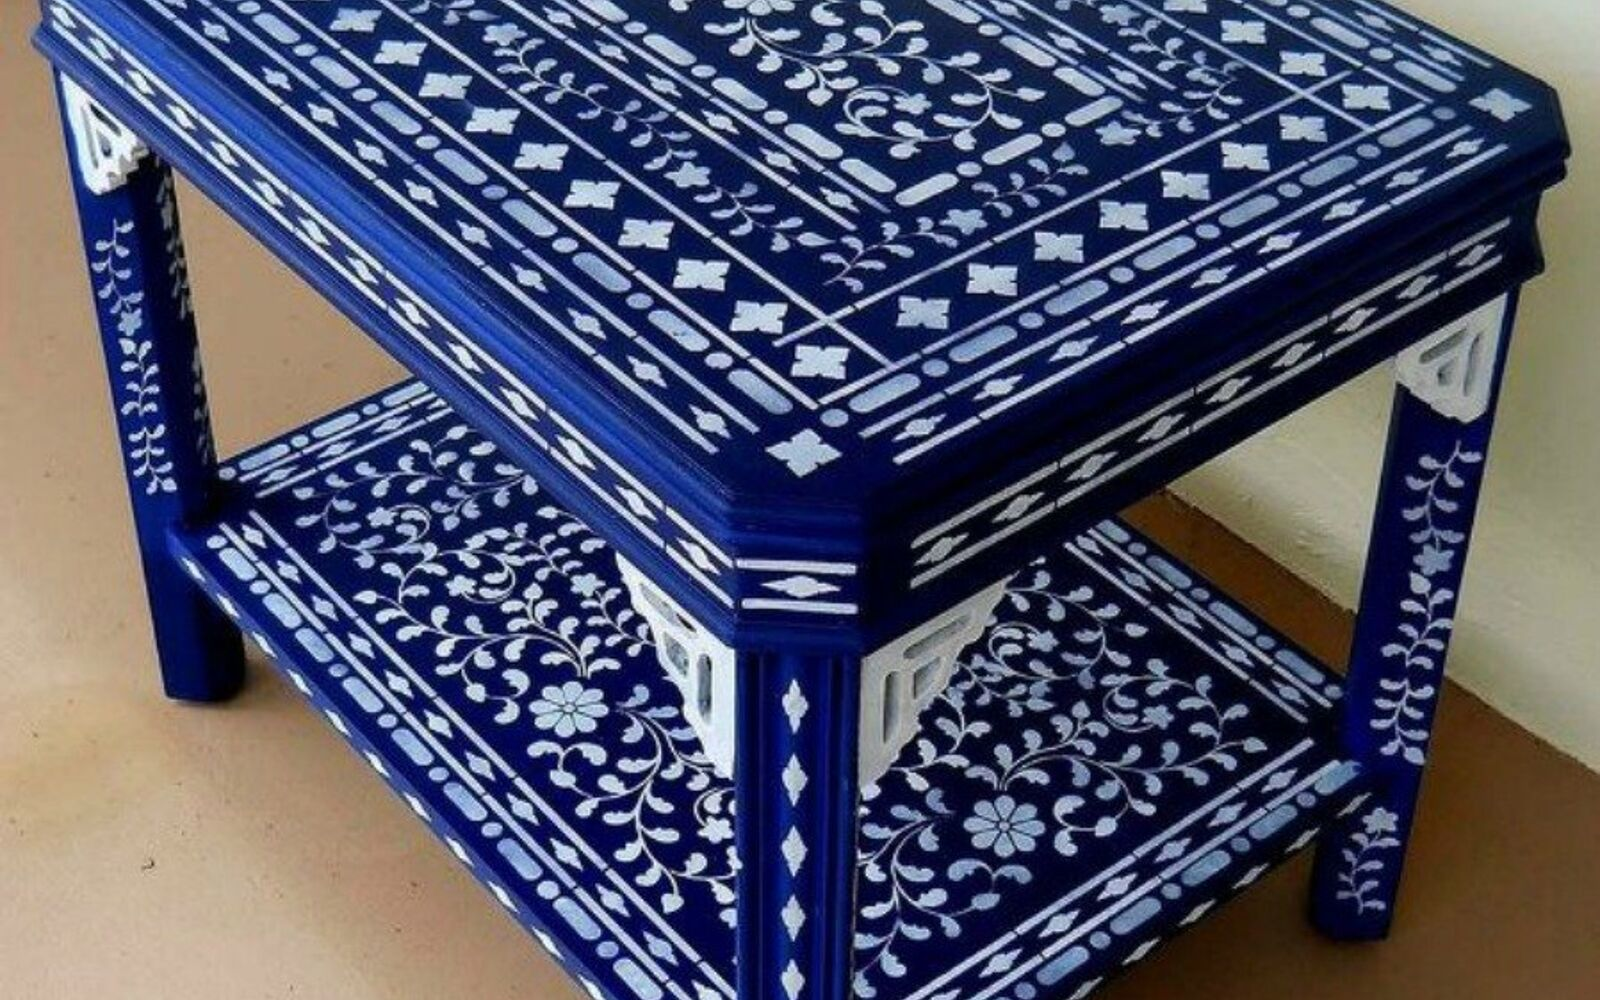 s 14 glamorous ways to upgrade your home using stencils, home decor, Upgrade your side table into an eye catcher